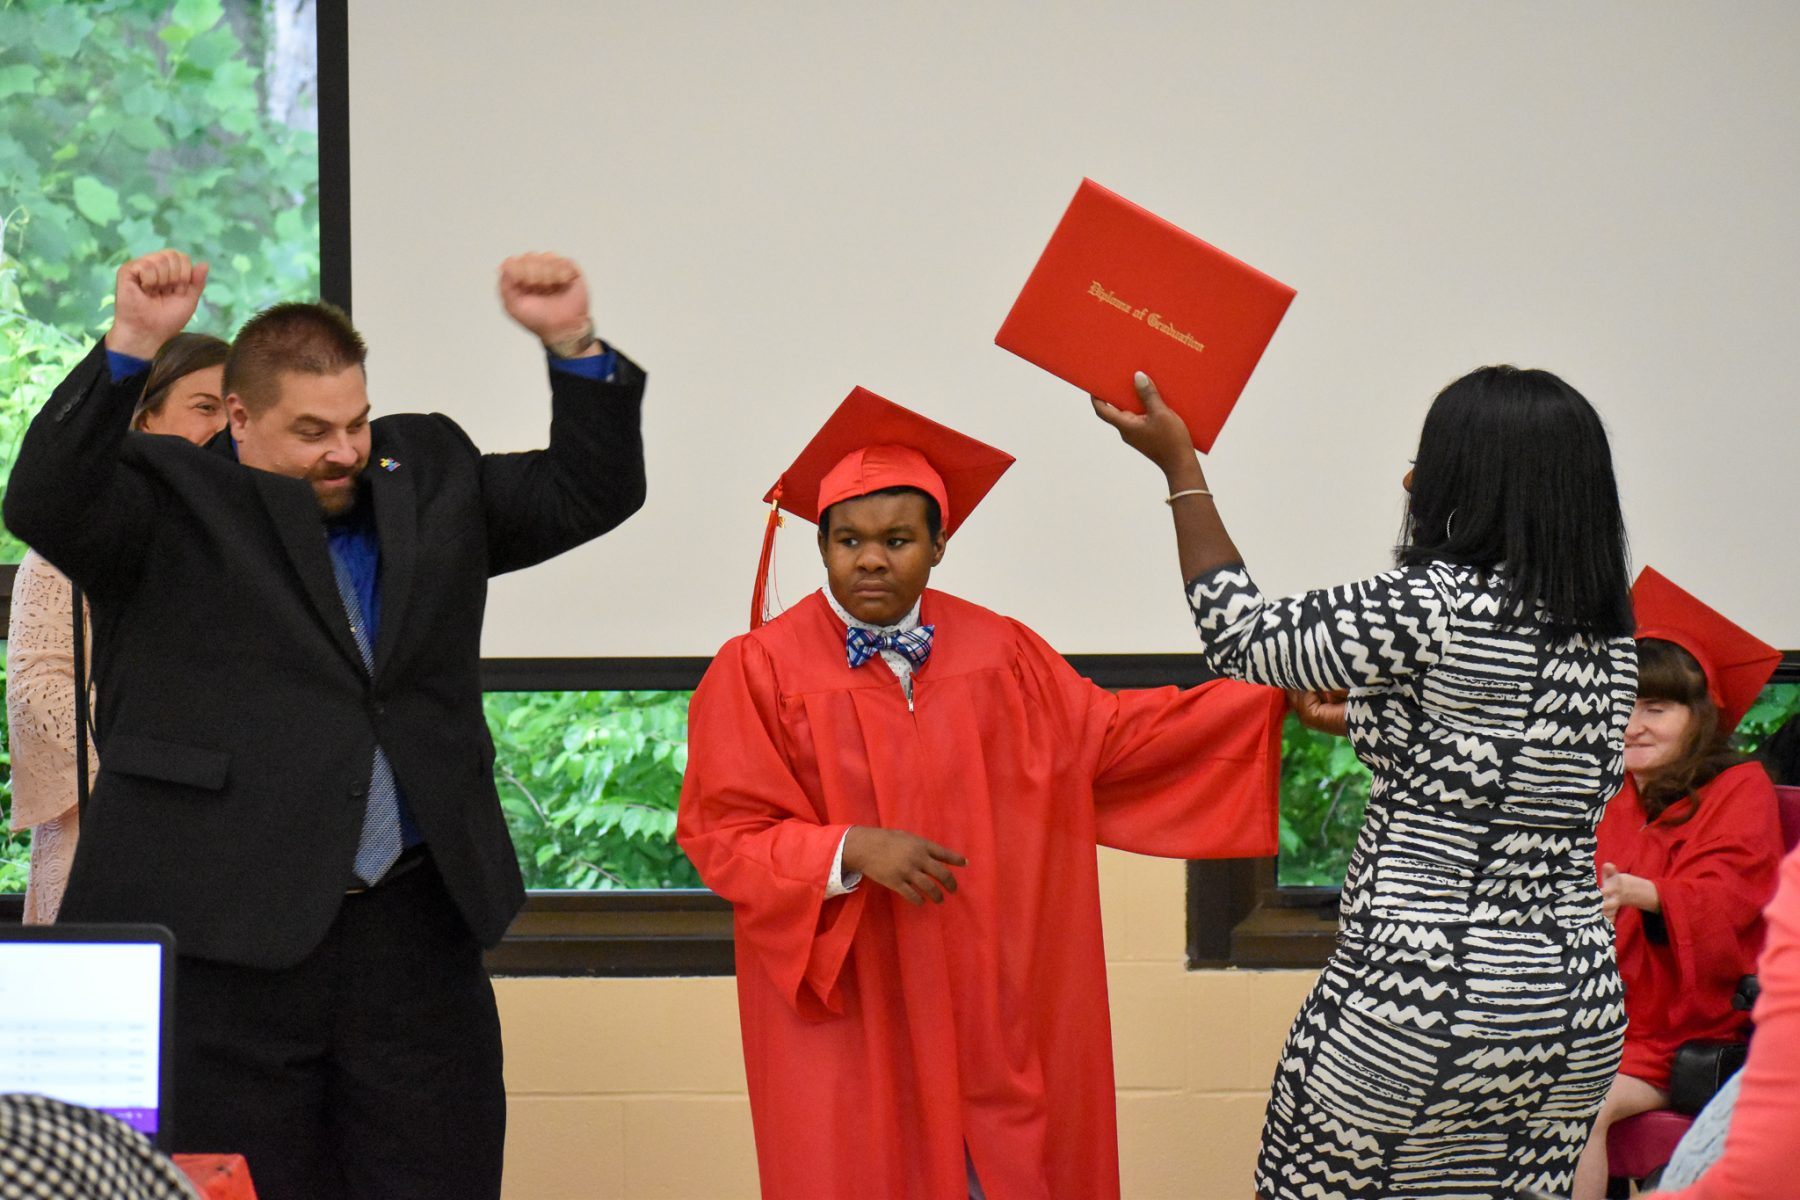 a young man in a red graduation gown and cap receives his diploma as people around him cheer